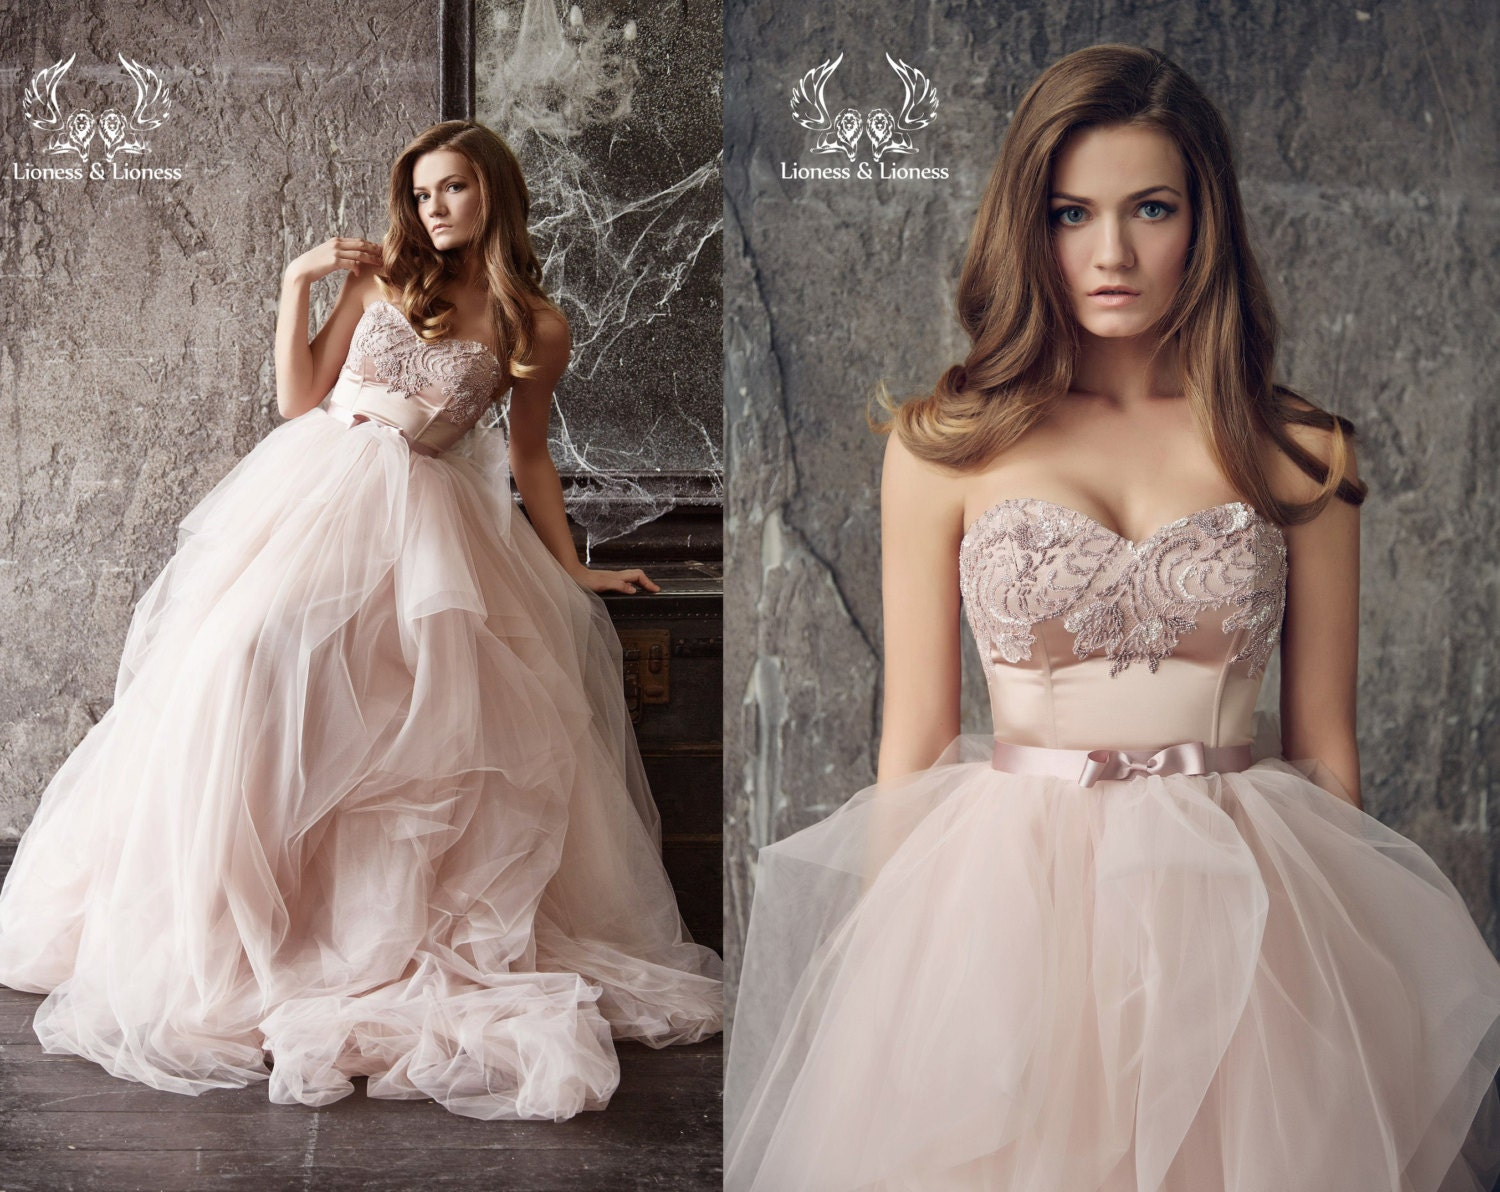 Stunning Wedding Dresses In Beige And Blush: Wedding Dress. Blush Wedding Dress. Blush Bride Dress. Pink